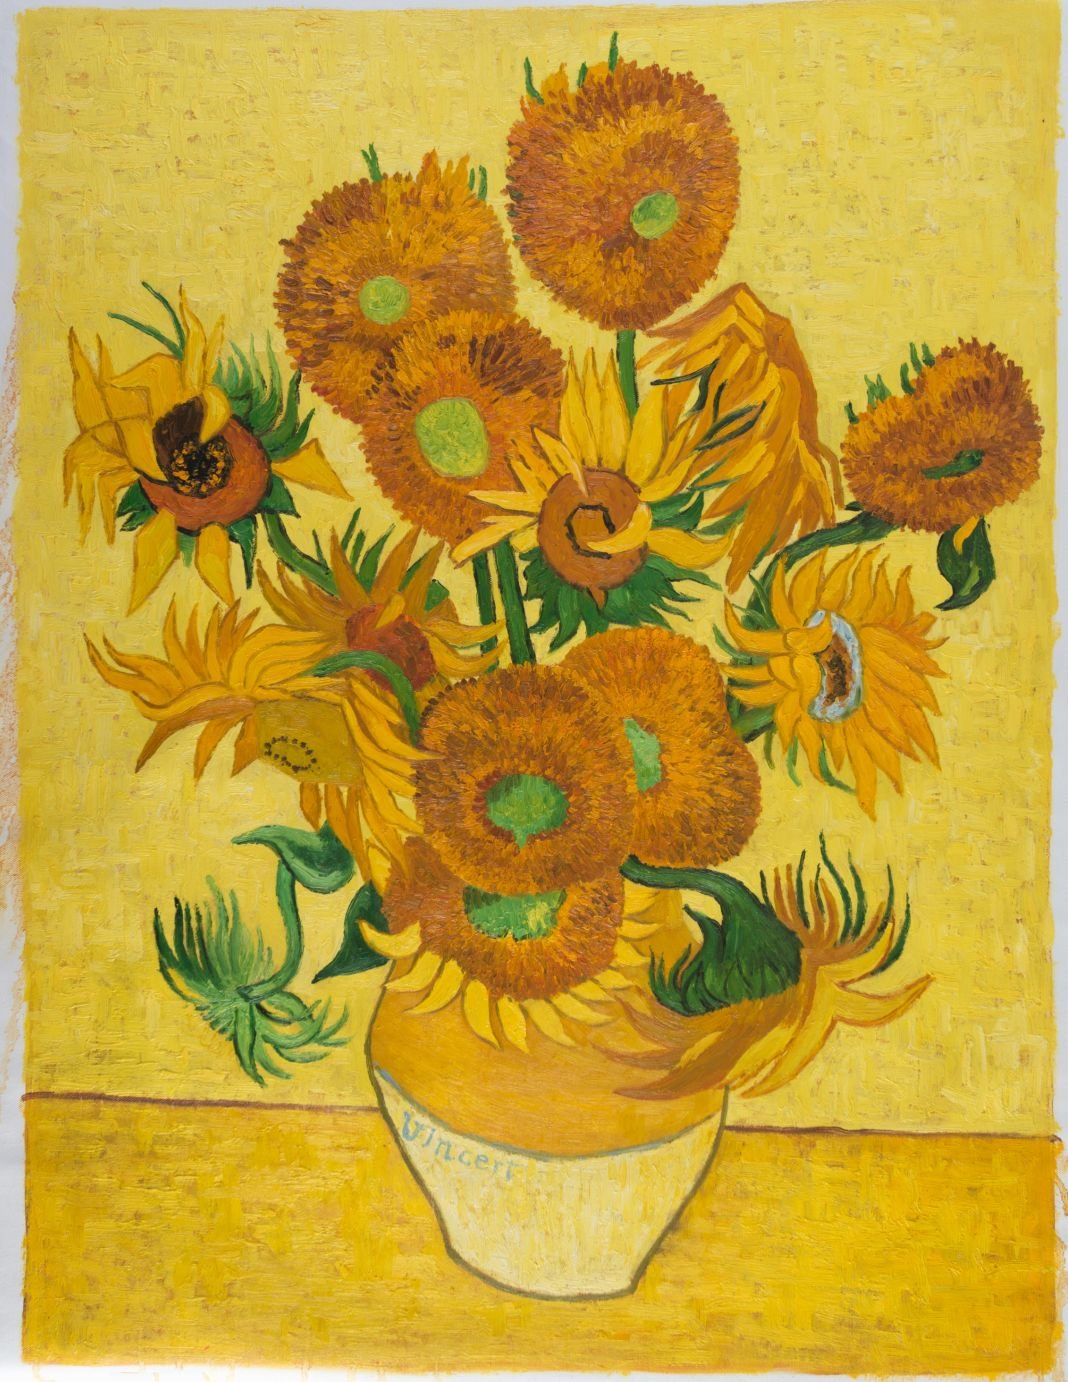 Vase with fifteen sunflowers reproduction van gogh studio van gogh reproduction vase with fifteen sunflowers reviewsmspy